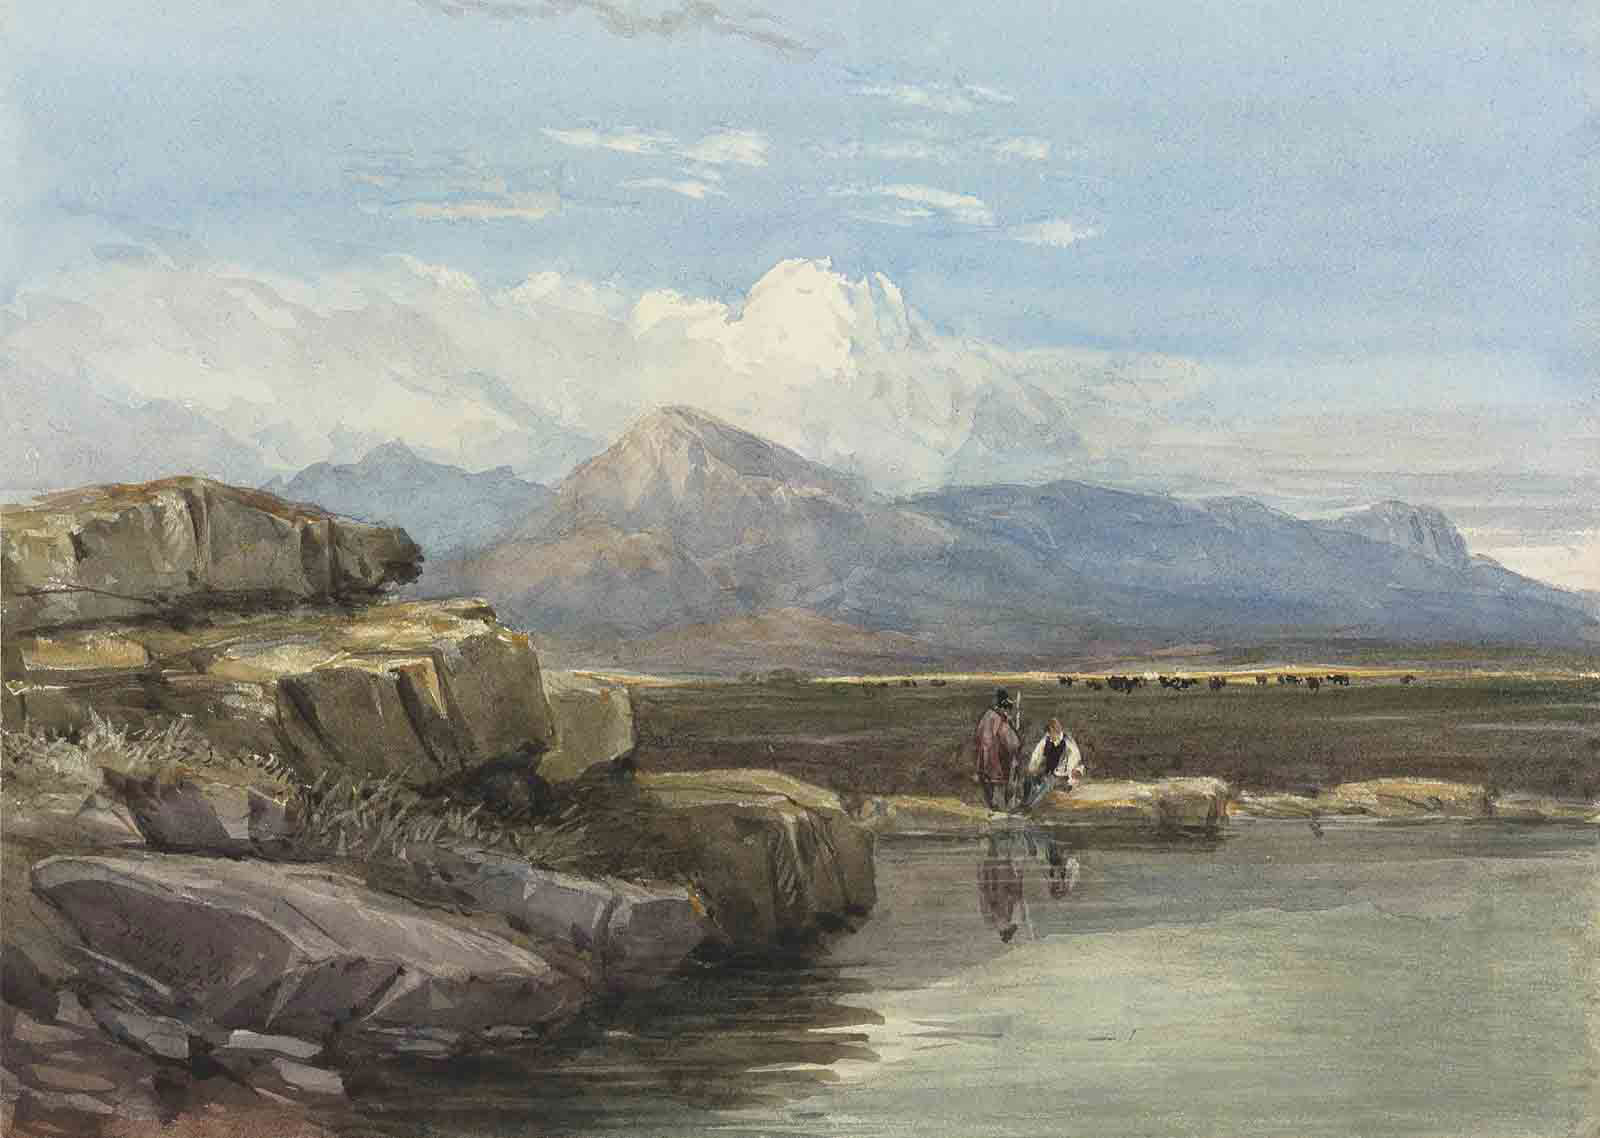 Figures by a rocky pool, Snowdon beyond, North Wales